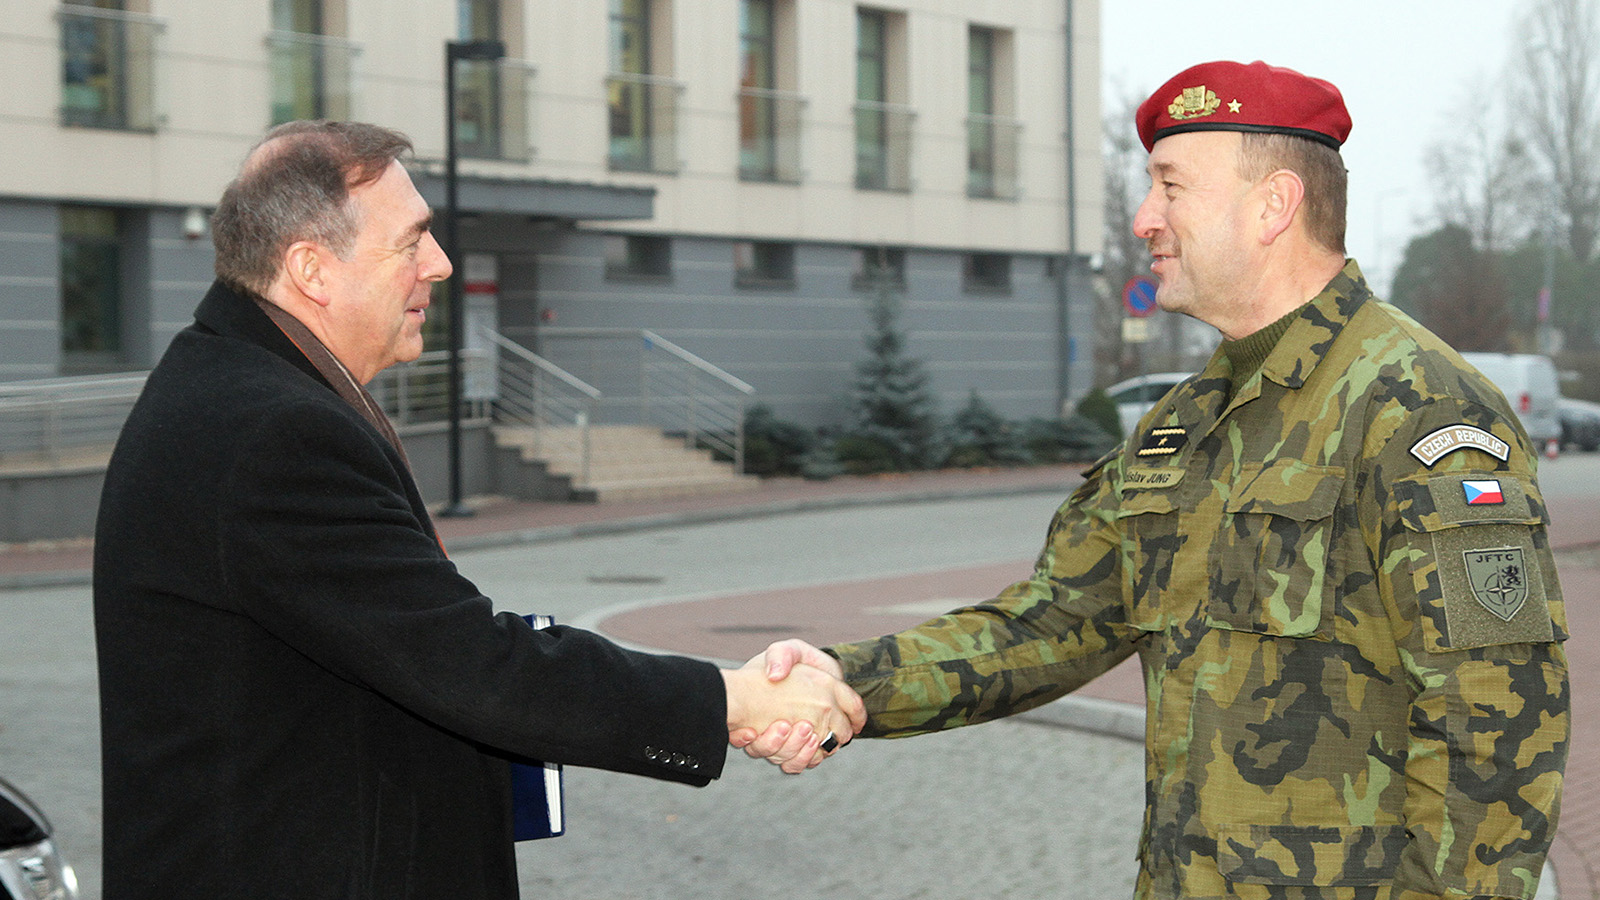 NATO Communications and Information Agency General Manager at Joint Force Training Centre